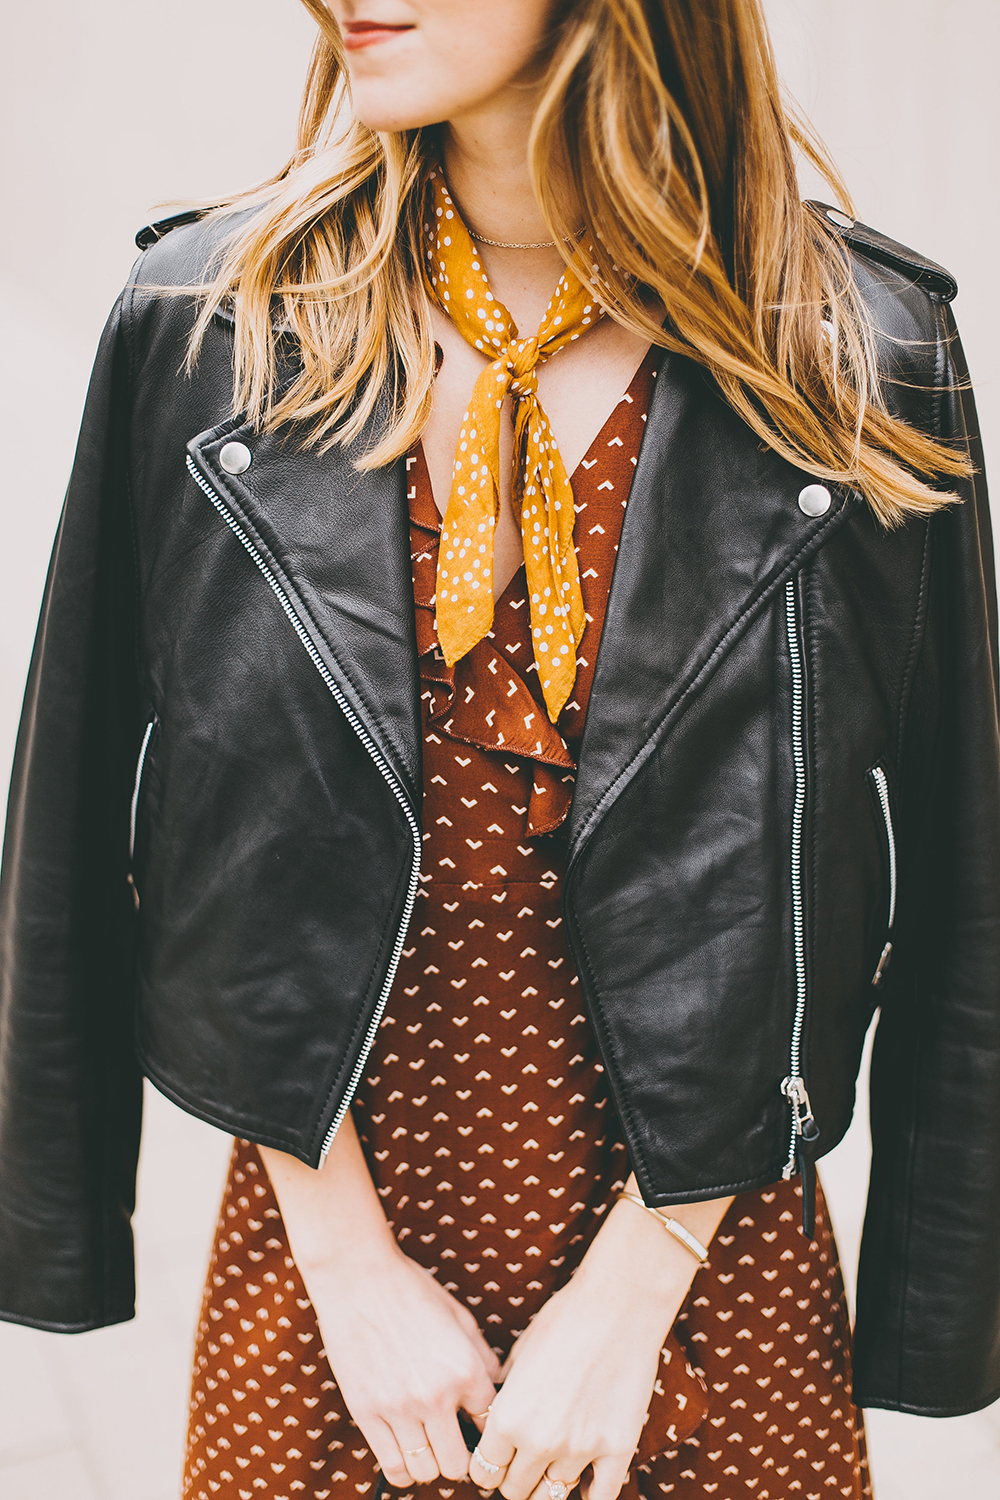 livvyland-blog-olivia-watson-austin-texas-fashion-blogger-urban-outfitters-wrap-dress-sezane-leather-jacket-fall-outfit-idea-5